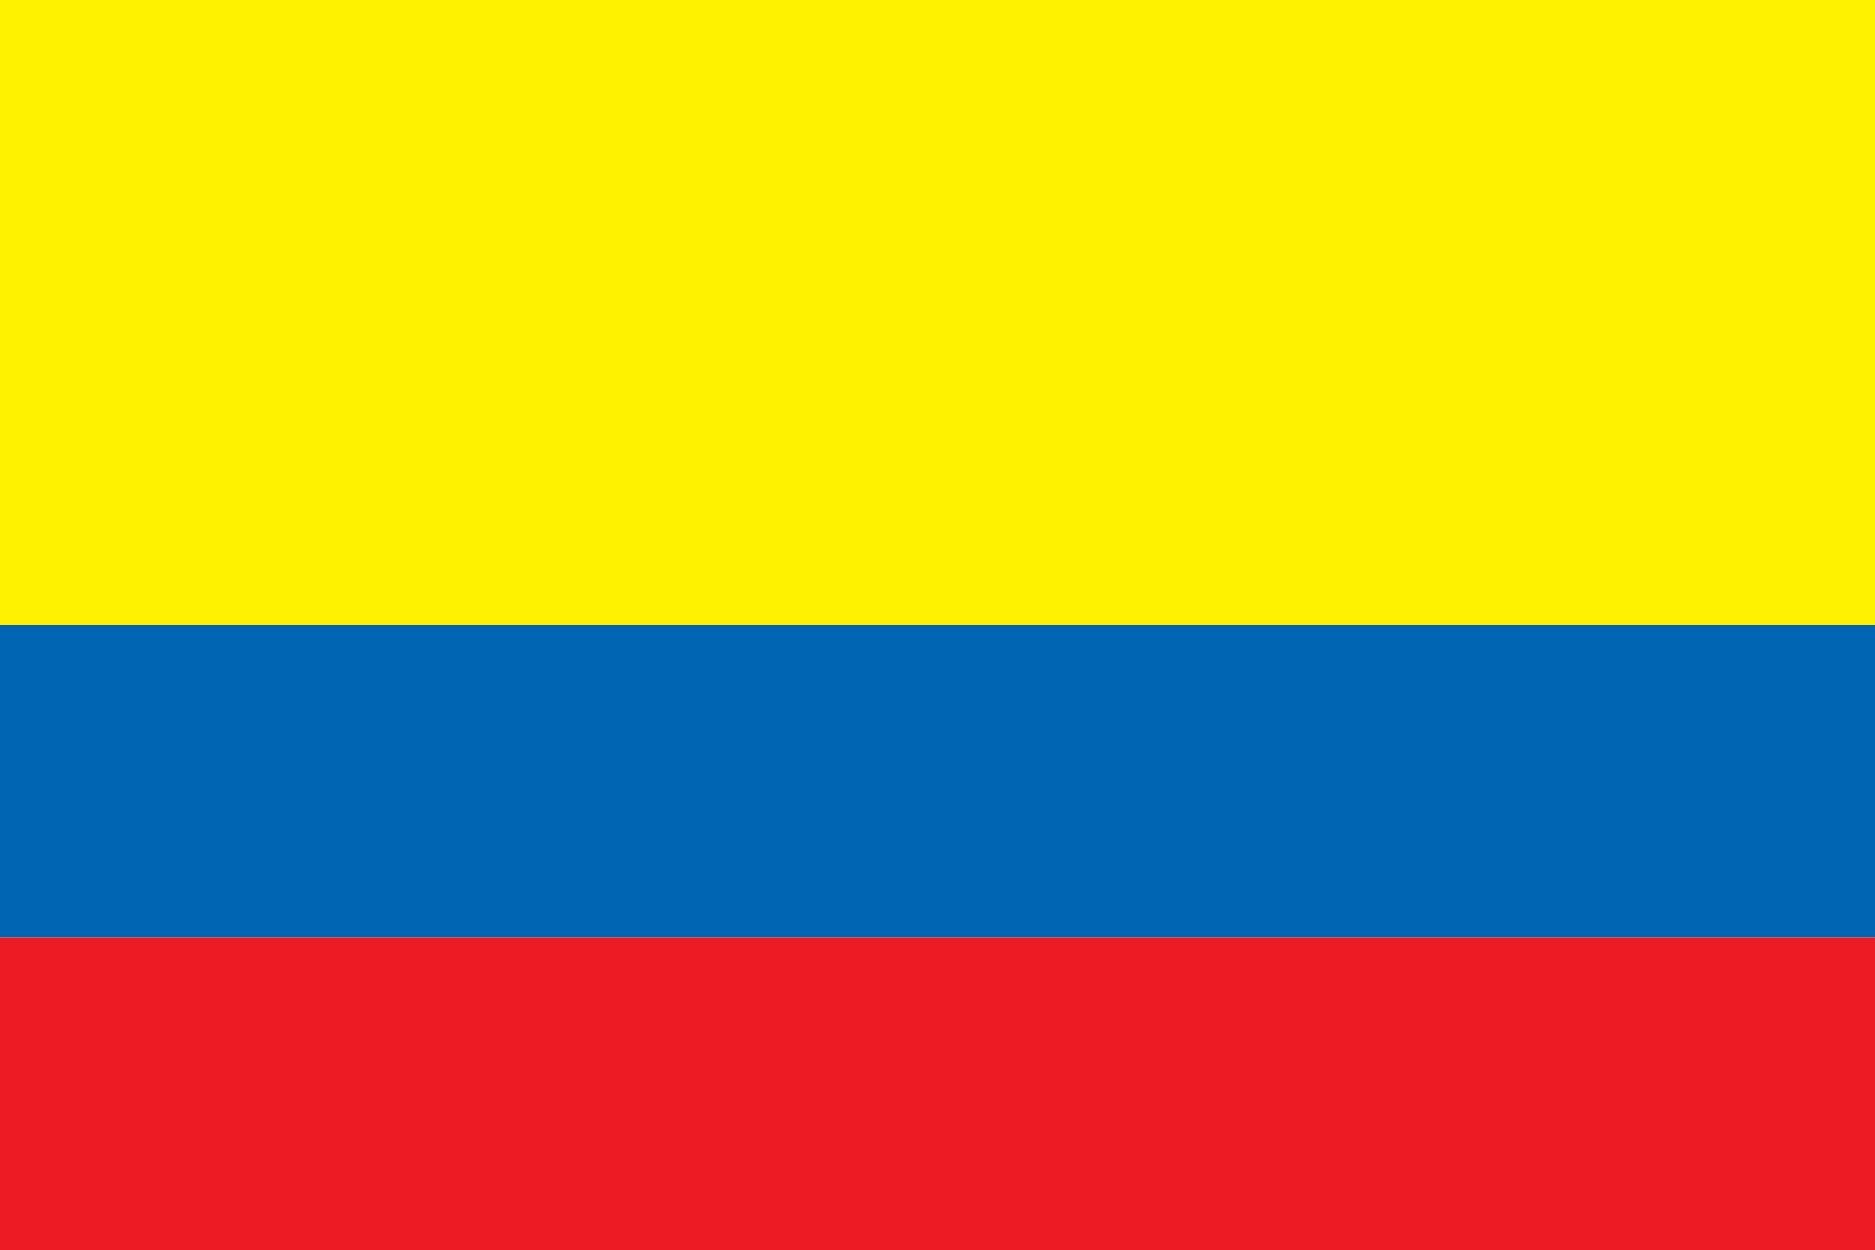 Colombia Flag and Emblem [Colombian] Vector EPS Free Download, Logo, Icons, Brand Emblems